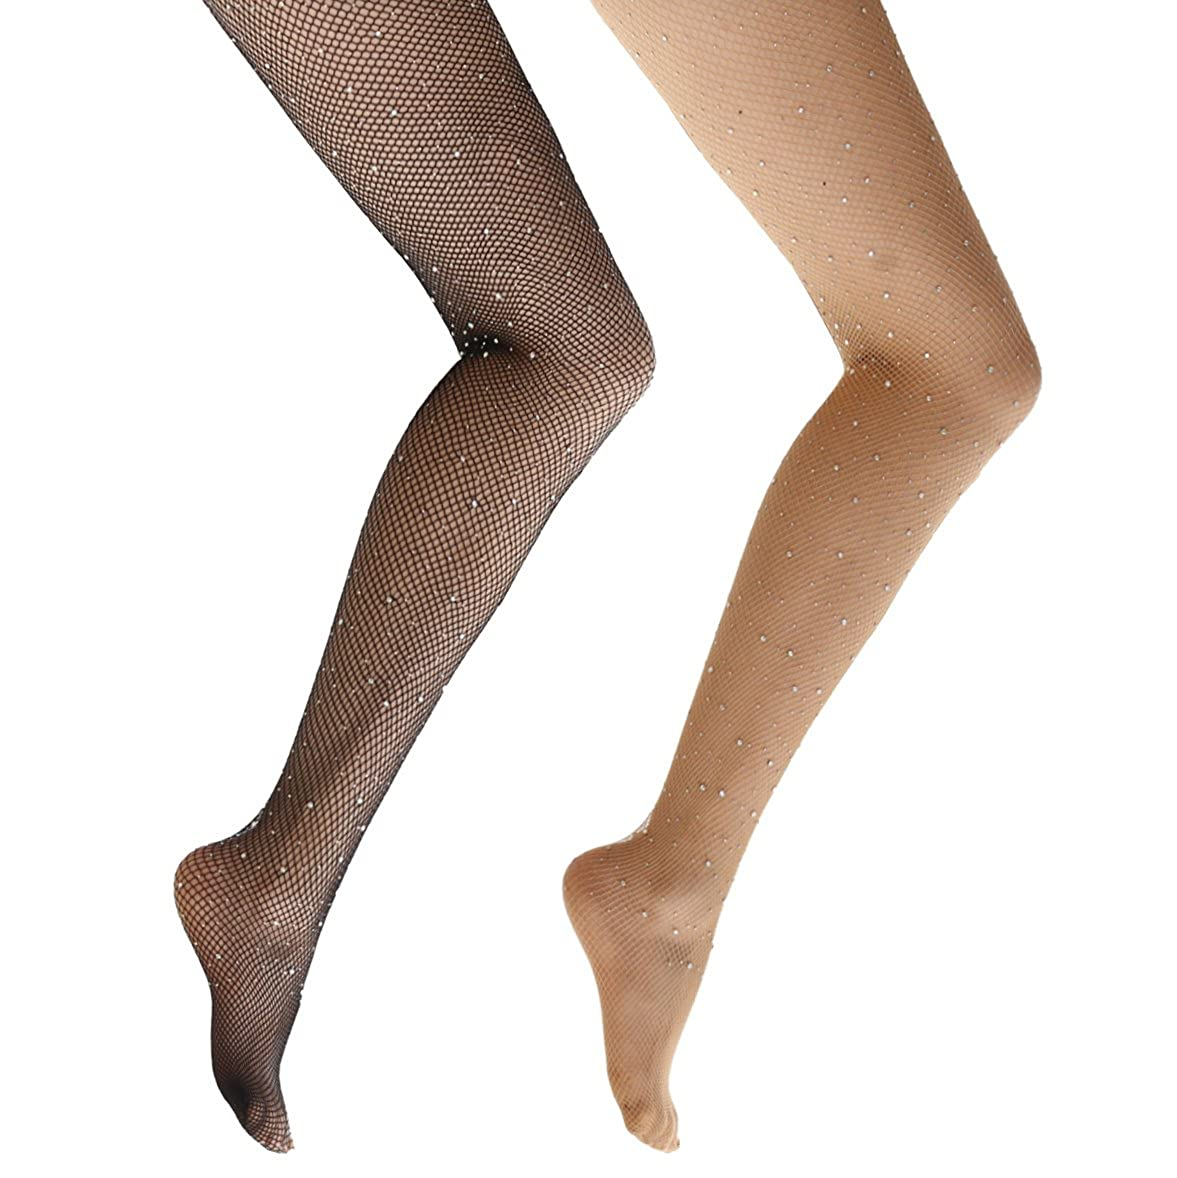 f253cc0cc0409 Rhinestone Fishnets Design: Sheer to toe tights with crystal rhinestone  sparkles throughout small fishnet pantyhose, Optically slimming effect